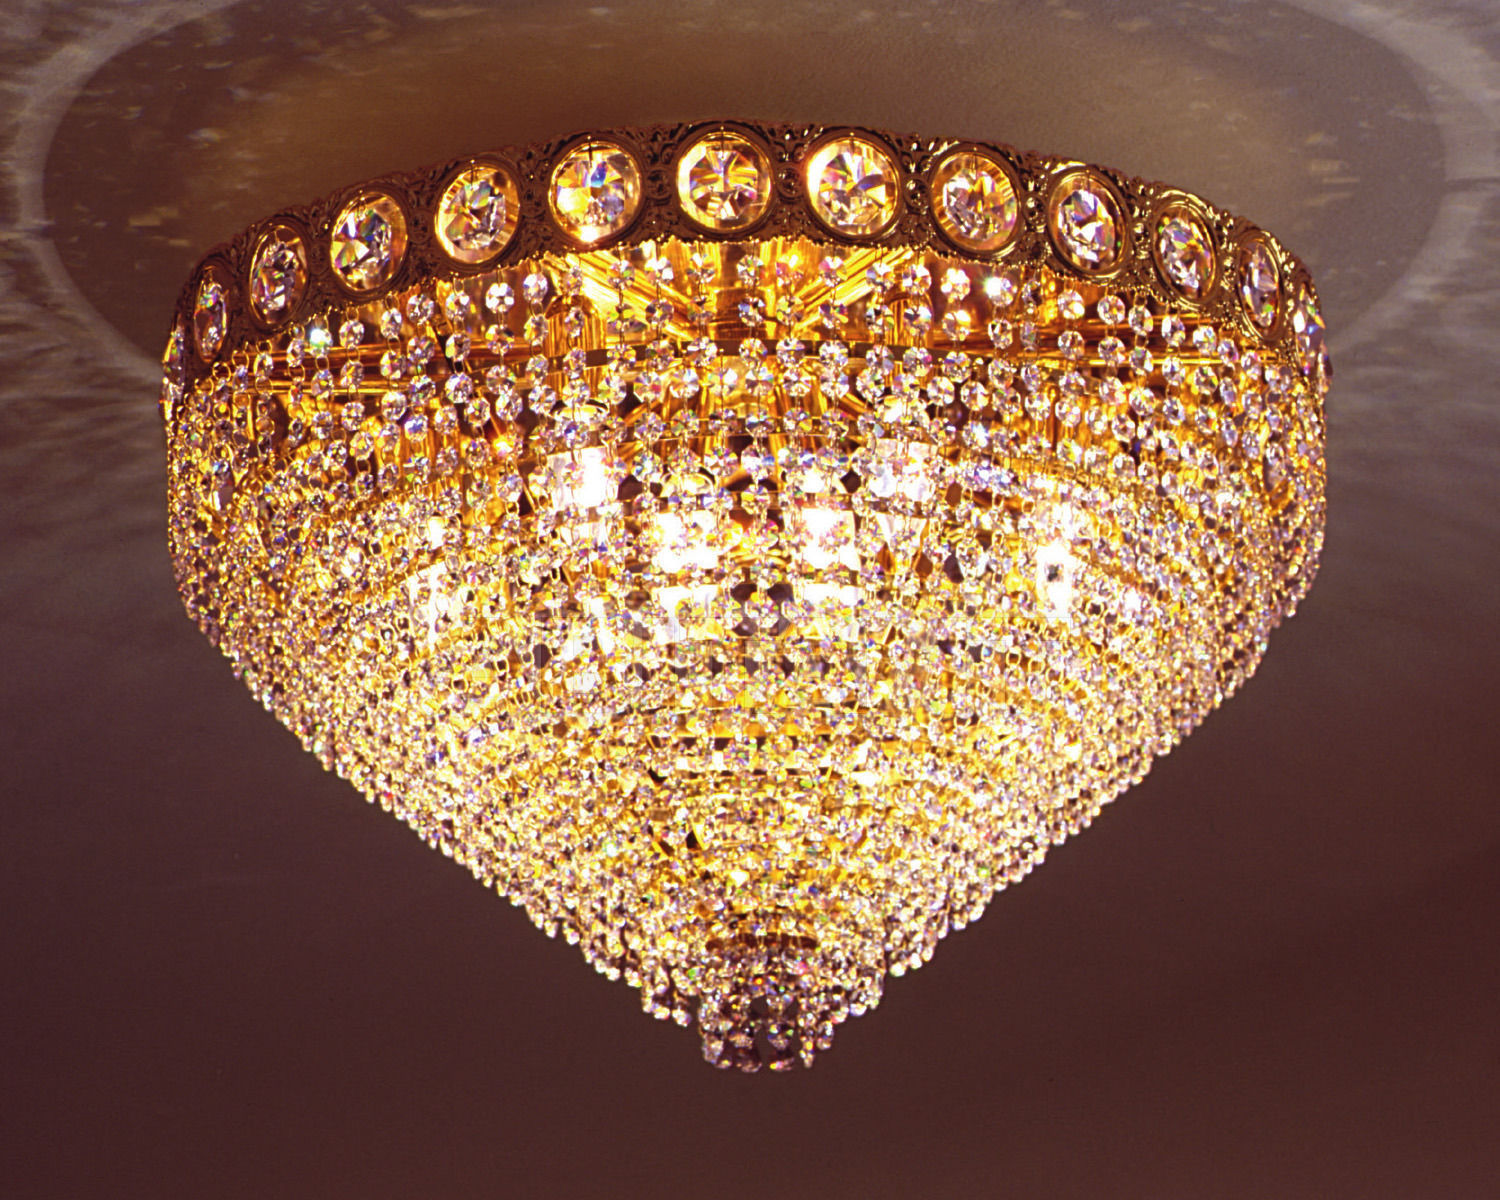 Купить Люстра Non Solo Luce Ceiling Lamps TREVISO CL-06 G